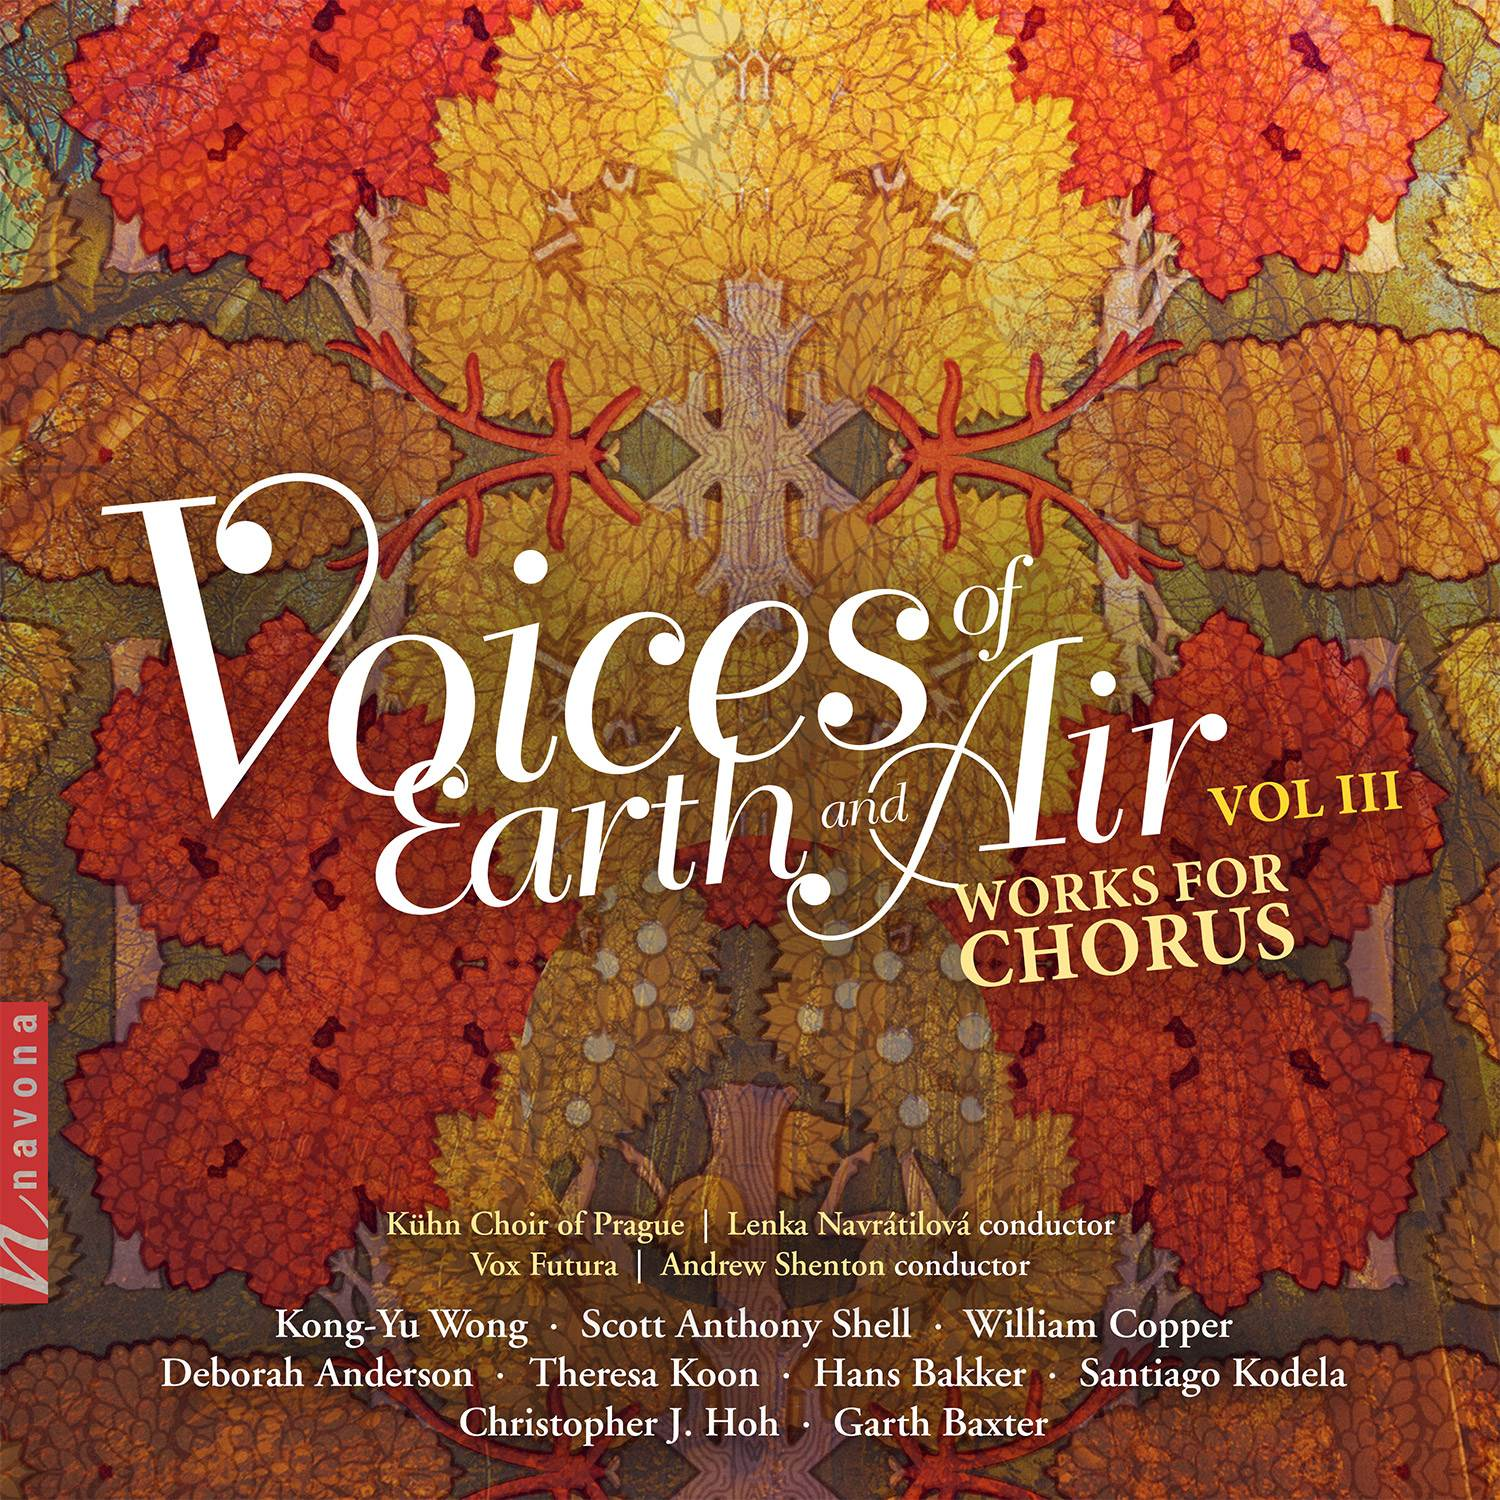 Voices of Earth & Air Vol. III-Various Artists - Album Cover